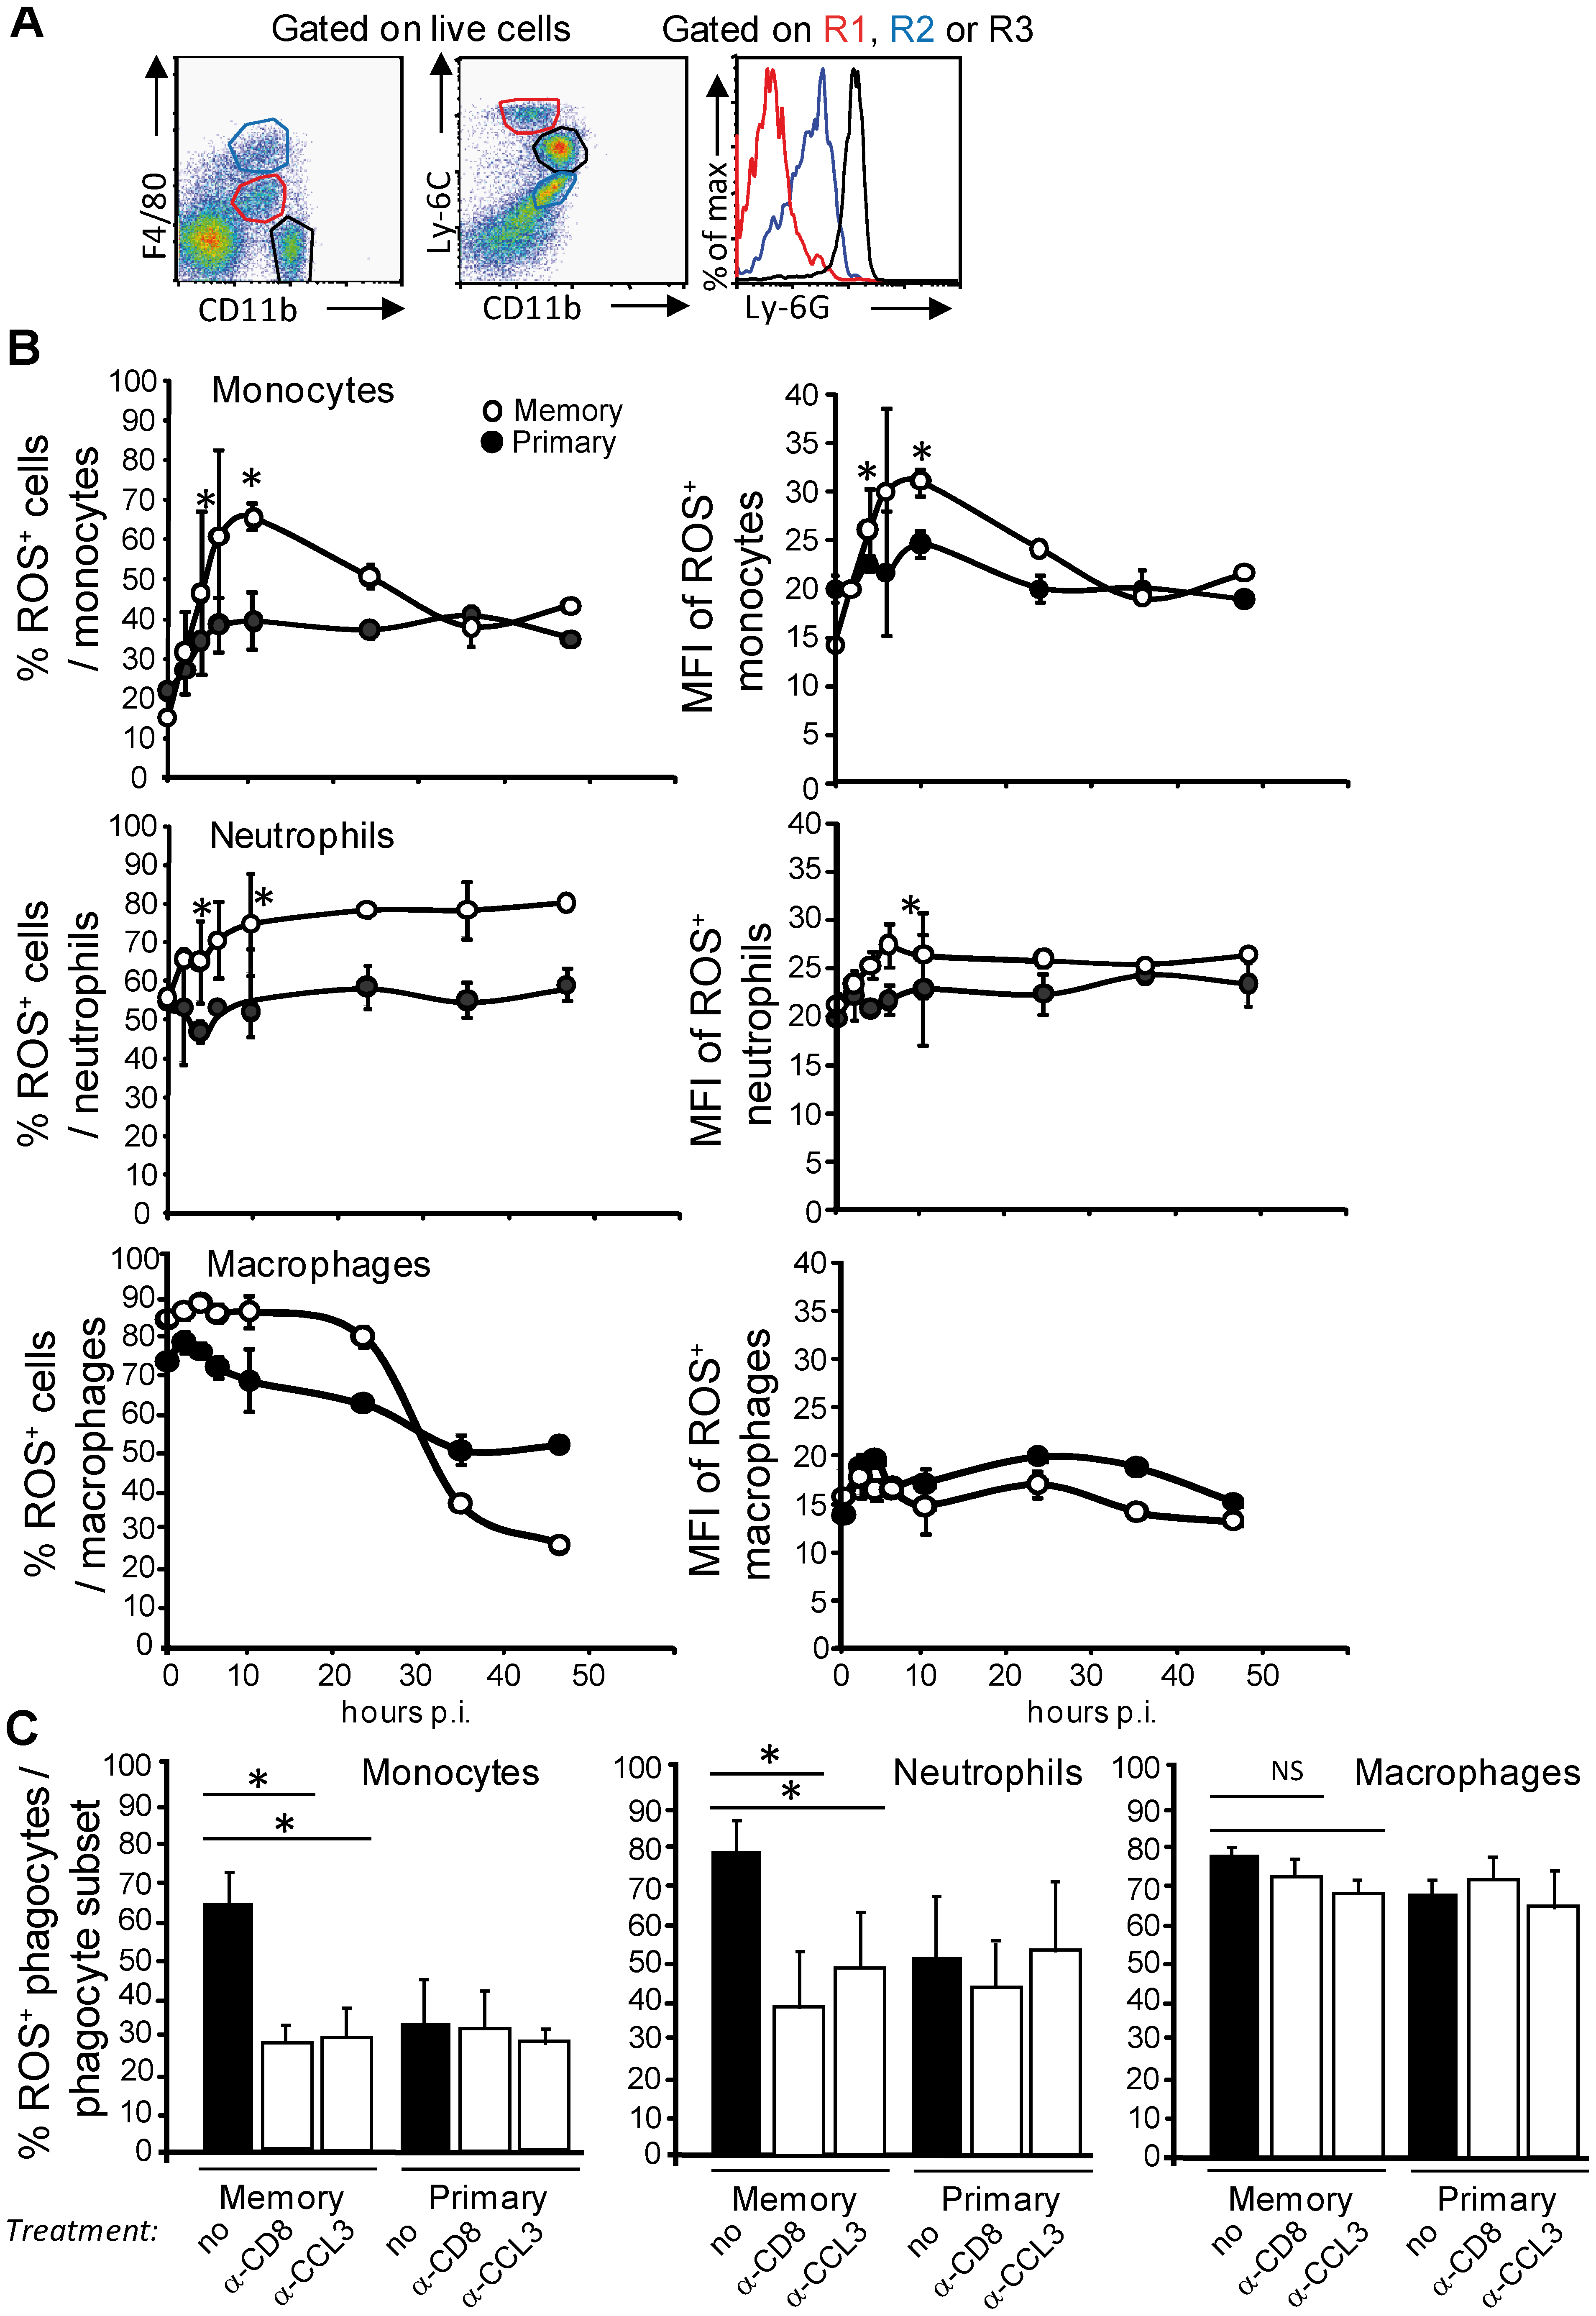 Increased frequencies of ROS<sup>+</sup> inflammatory monocytes and neutrophils that generate higher levels of ROS during the secondary infection.